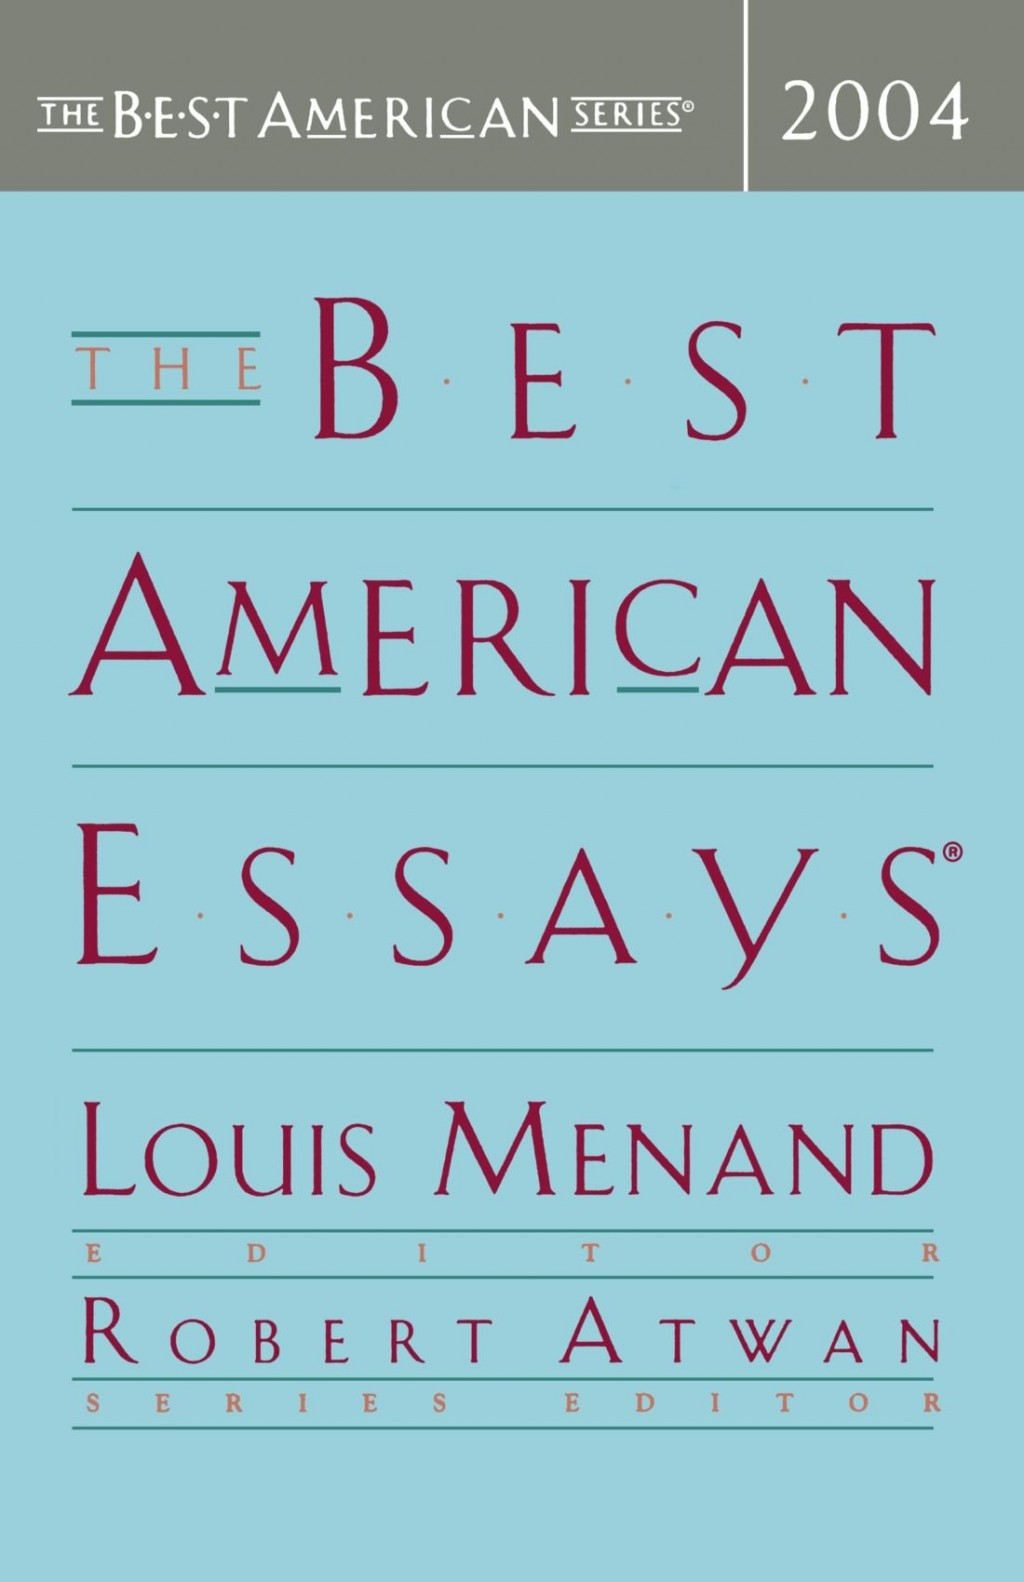 015 Essay Example The Best American Essays Wonderful 2018 Pdf 2017 Table Of Contents 2015 Free Large